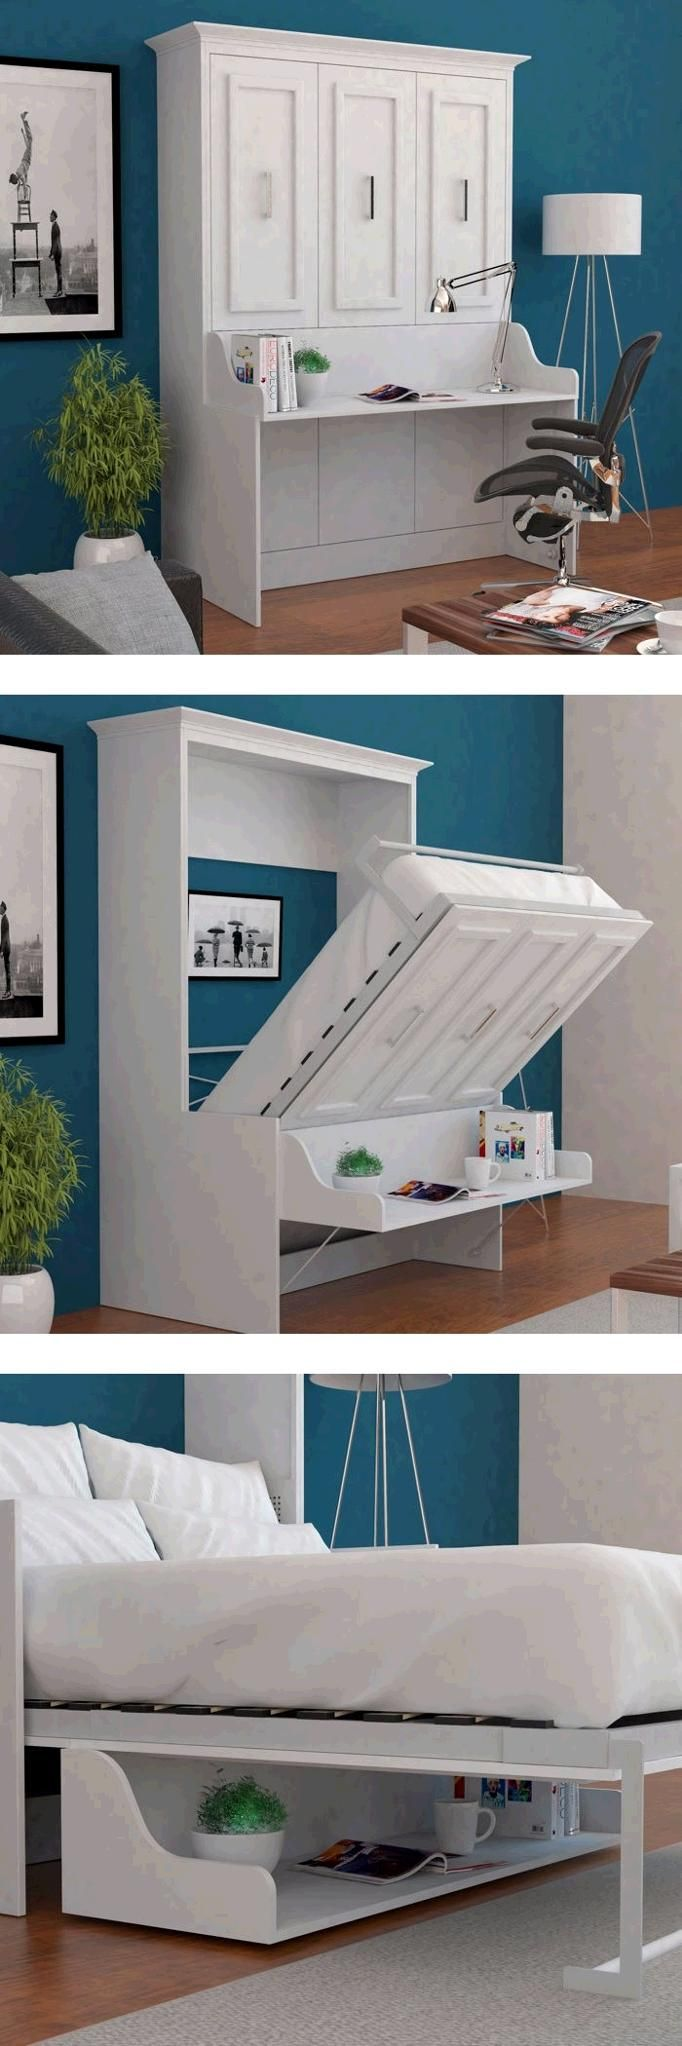 Best 25 wall beds ideas on pinterest diy murphy bed murphy the porter full wall bed with a desk built in is a truly unique and versatile amipublicfo Gallery